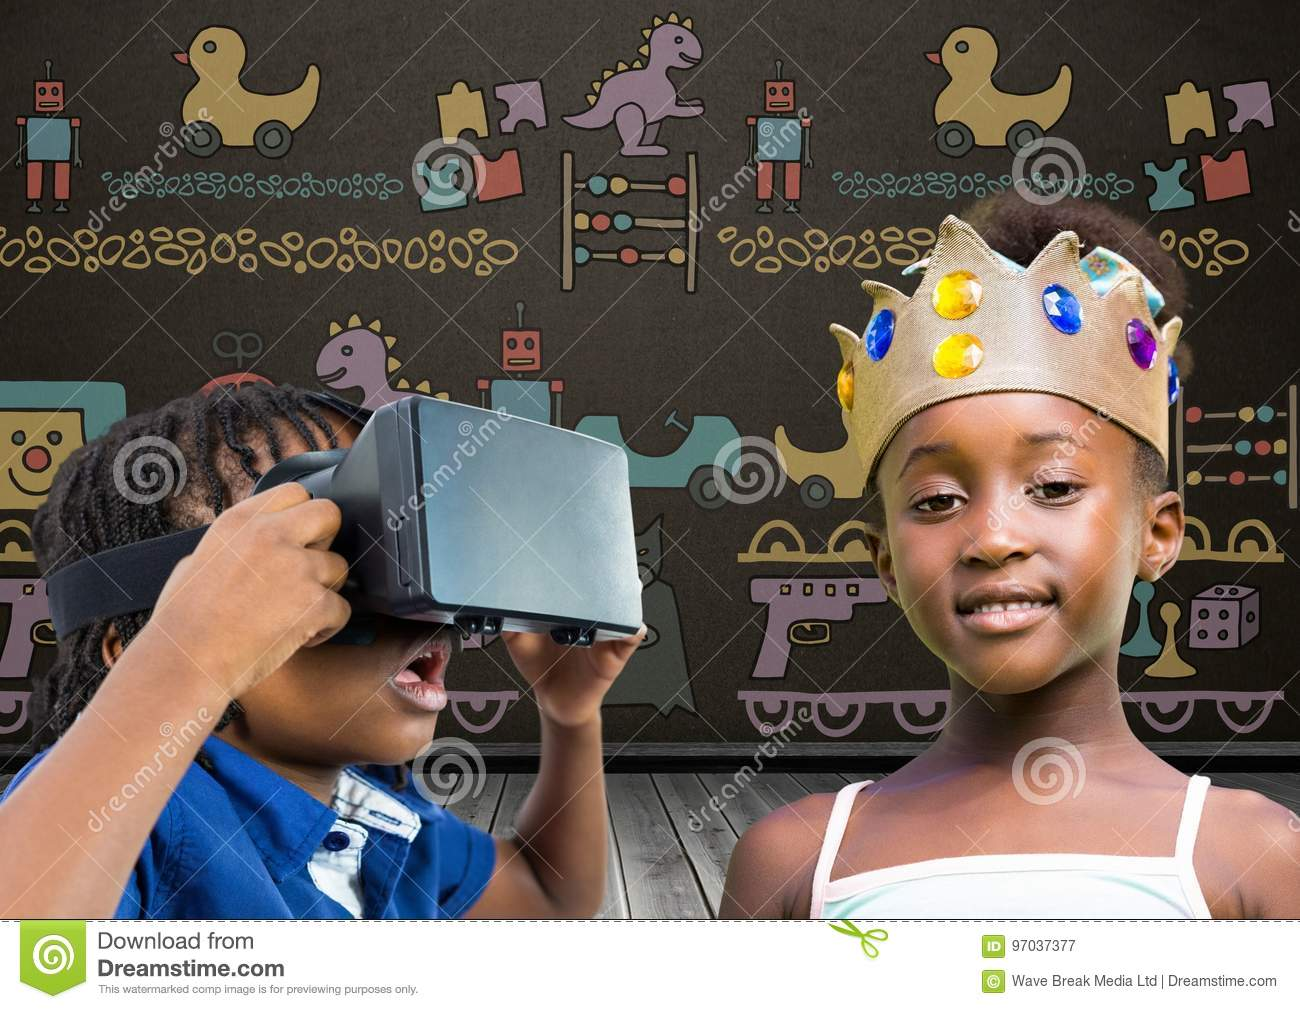 Boy with VR Headset and girl with crown in front of blackboard with toys graphics